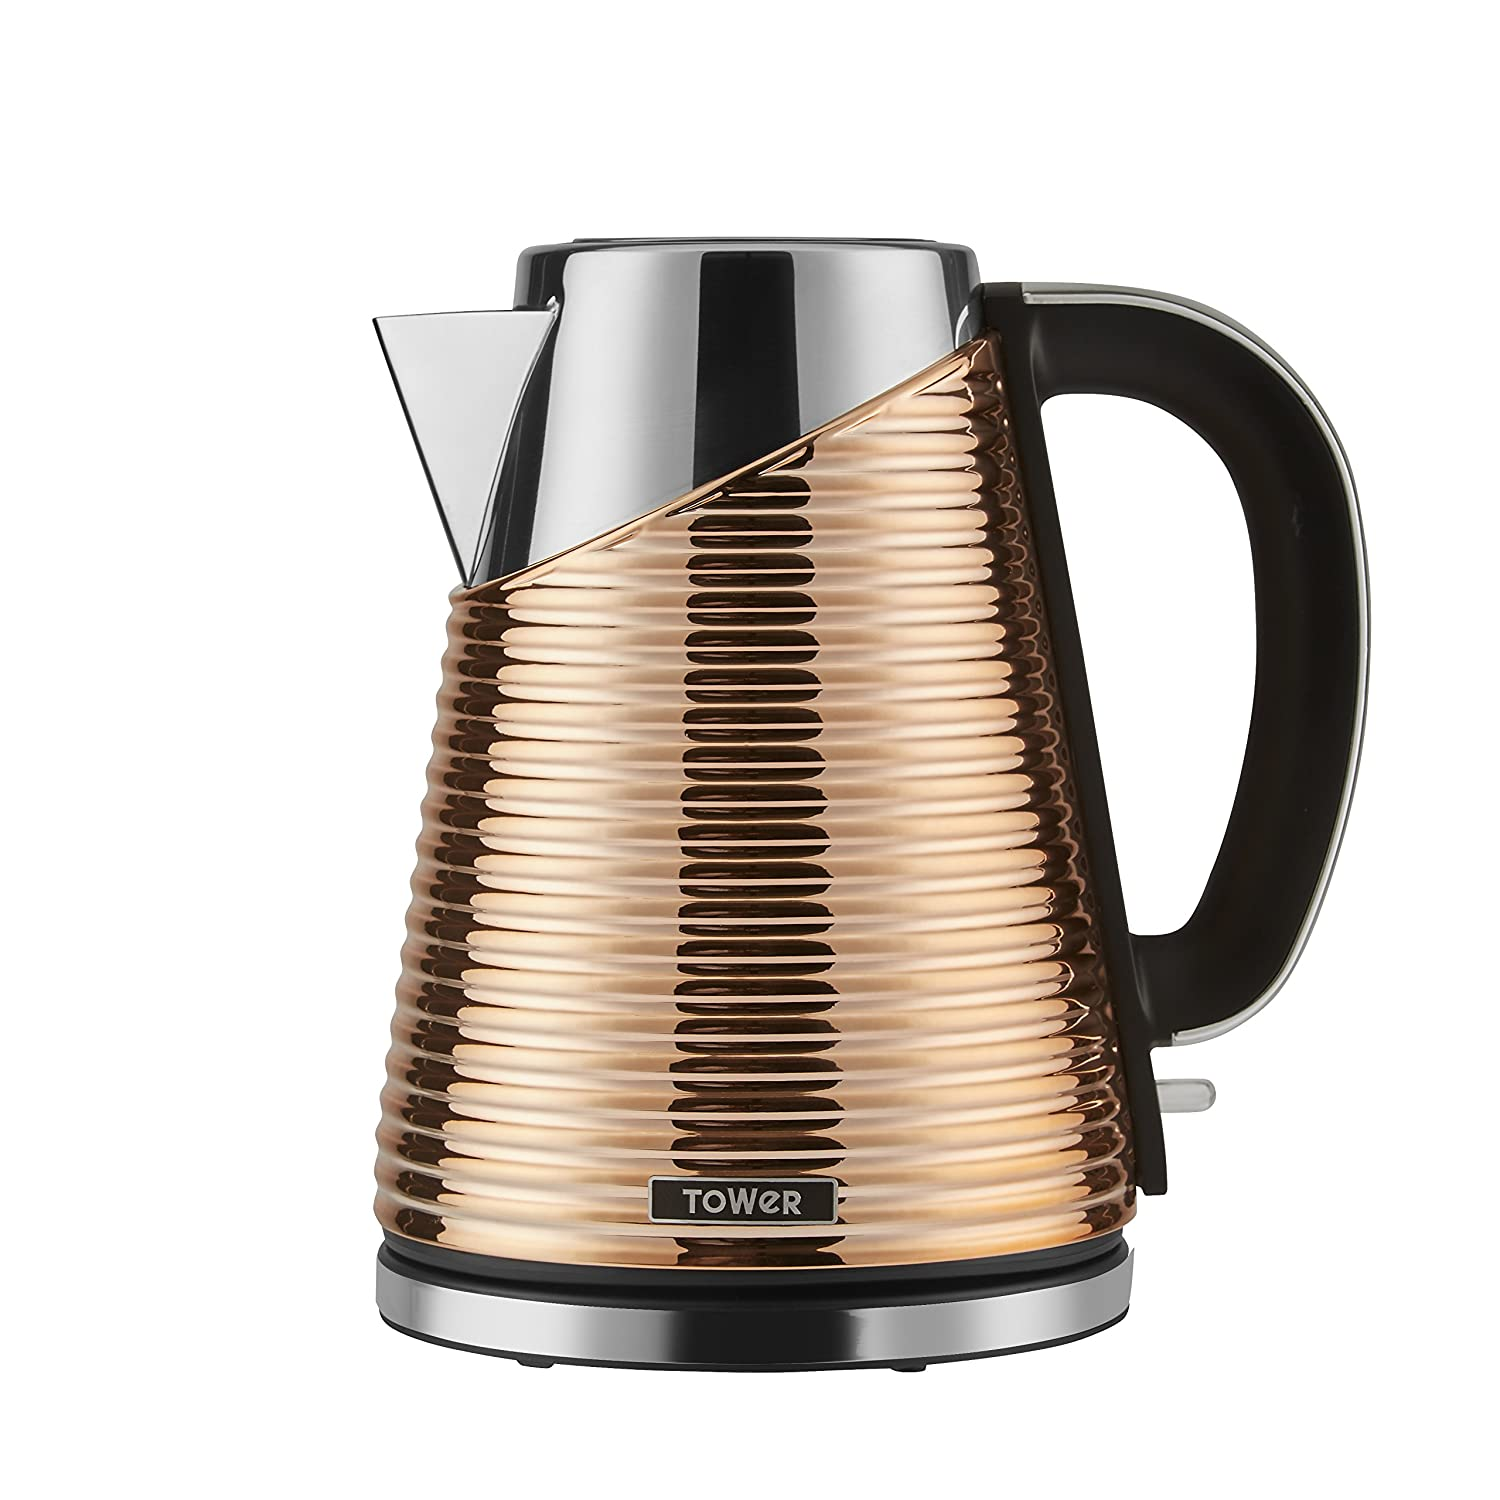 Tower T10009 Linear Fast Boil Jug Kettle with Cool Touch Housing, 3000 W, 1.5 Litre, Black and Stainless Steel RKW